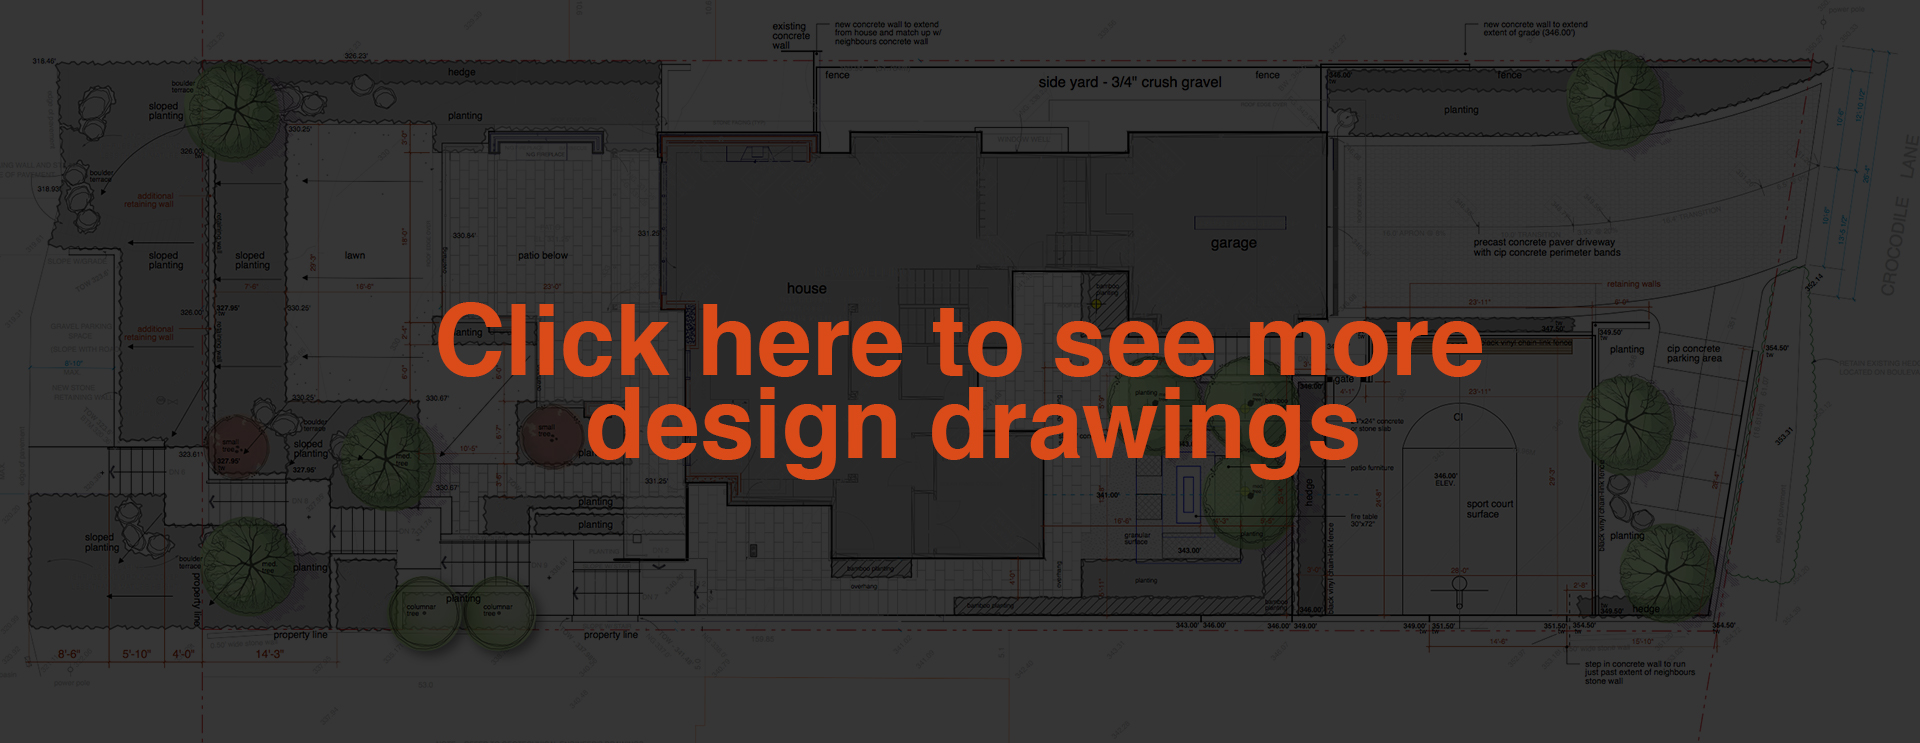 seedesigndrawings